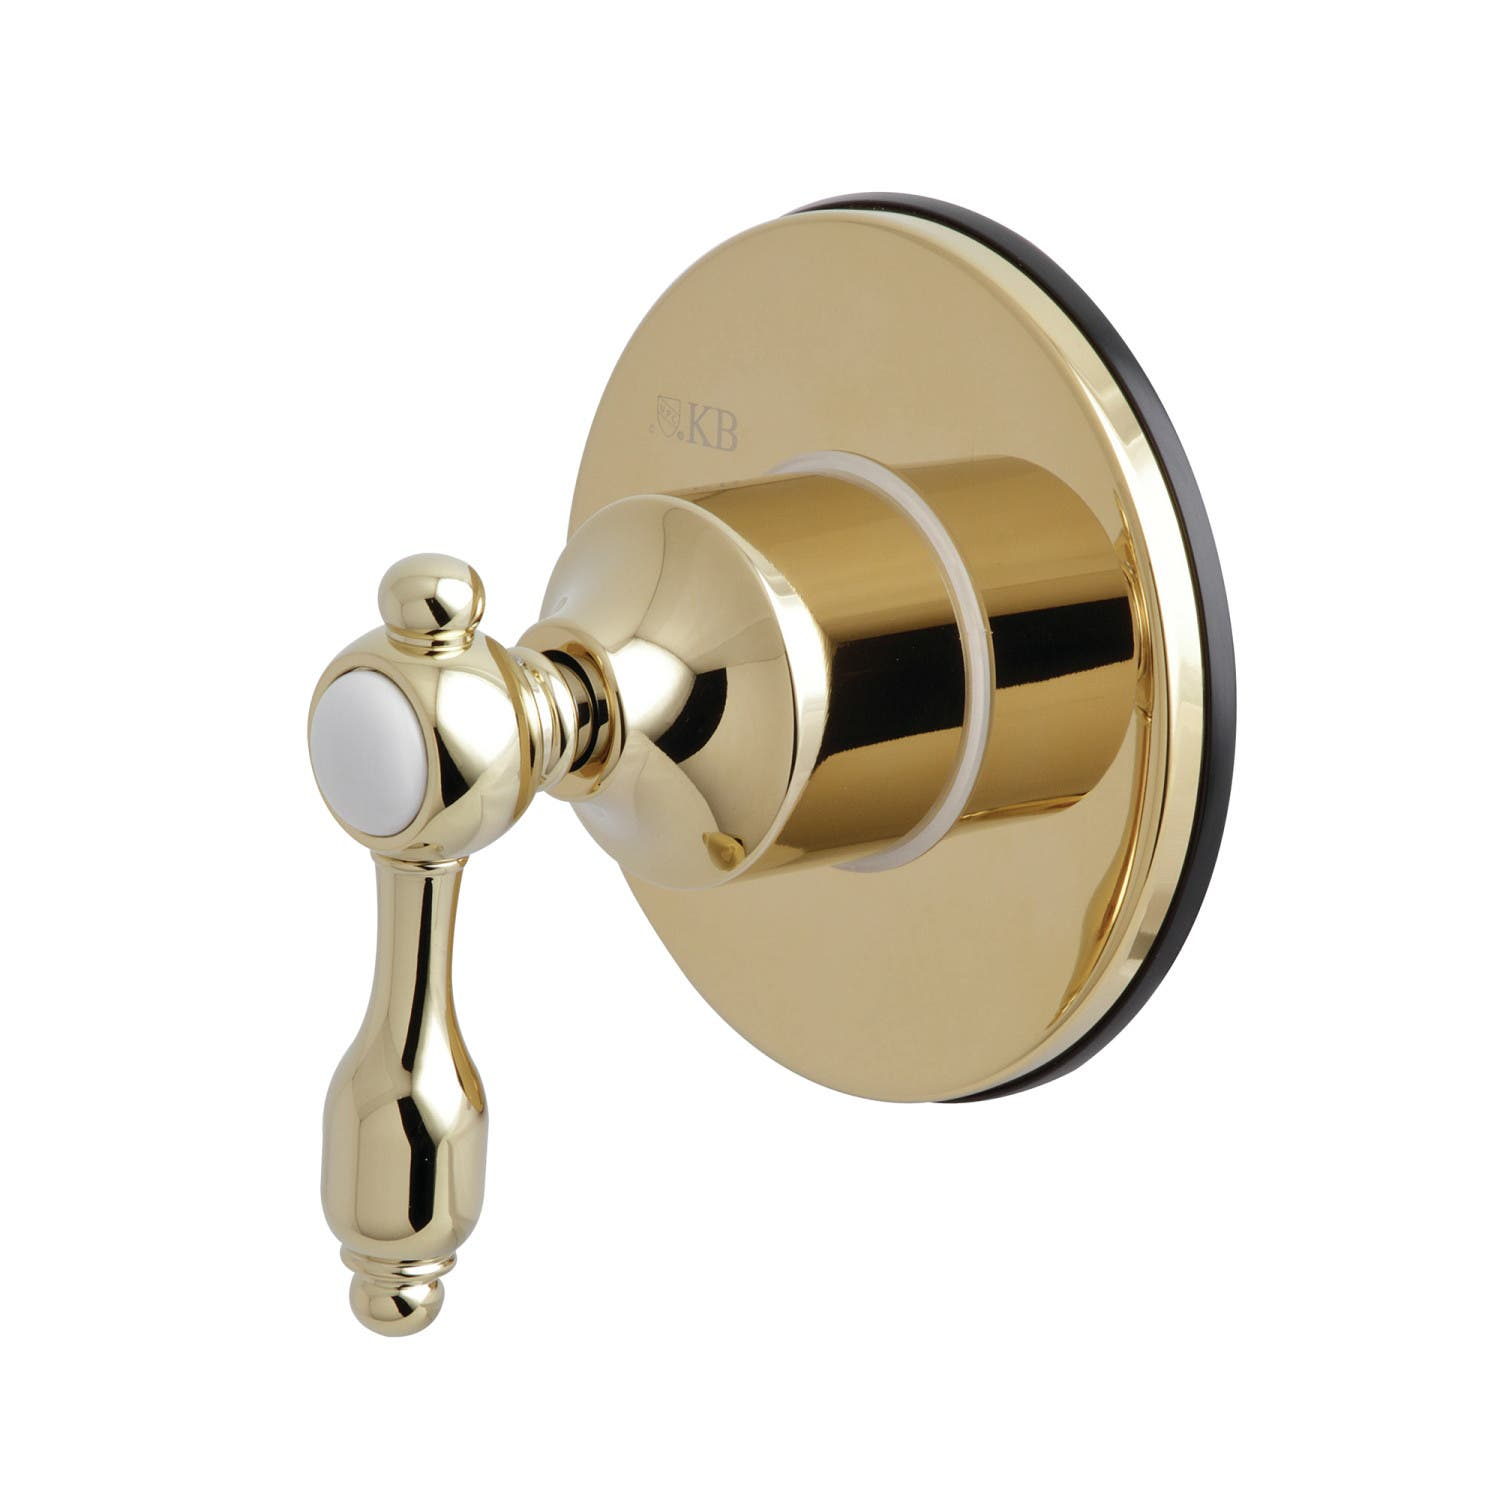 Kingston Brass KS3032TAL Three-Way Diverter Valve with Single-Handle and Round Plate, Polished Brass